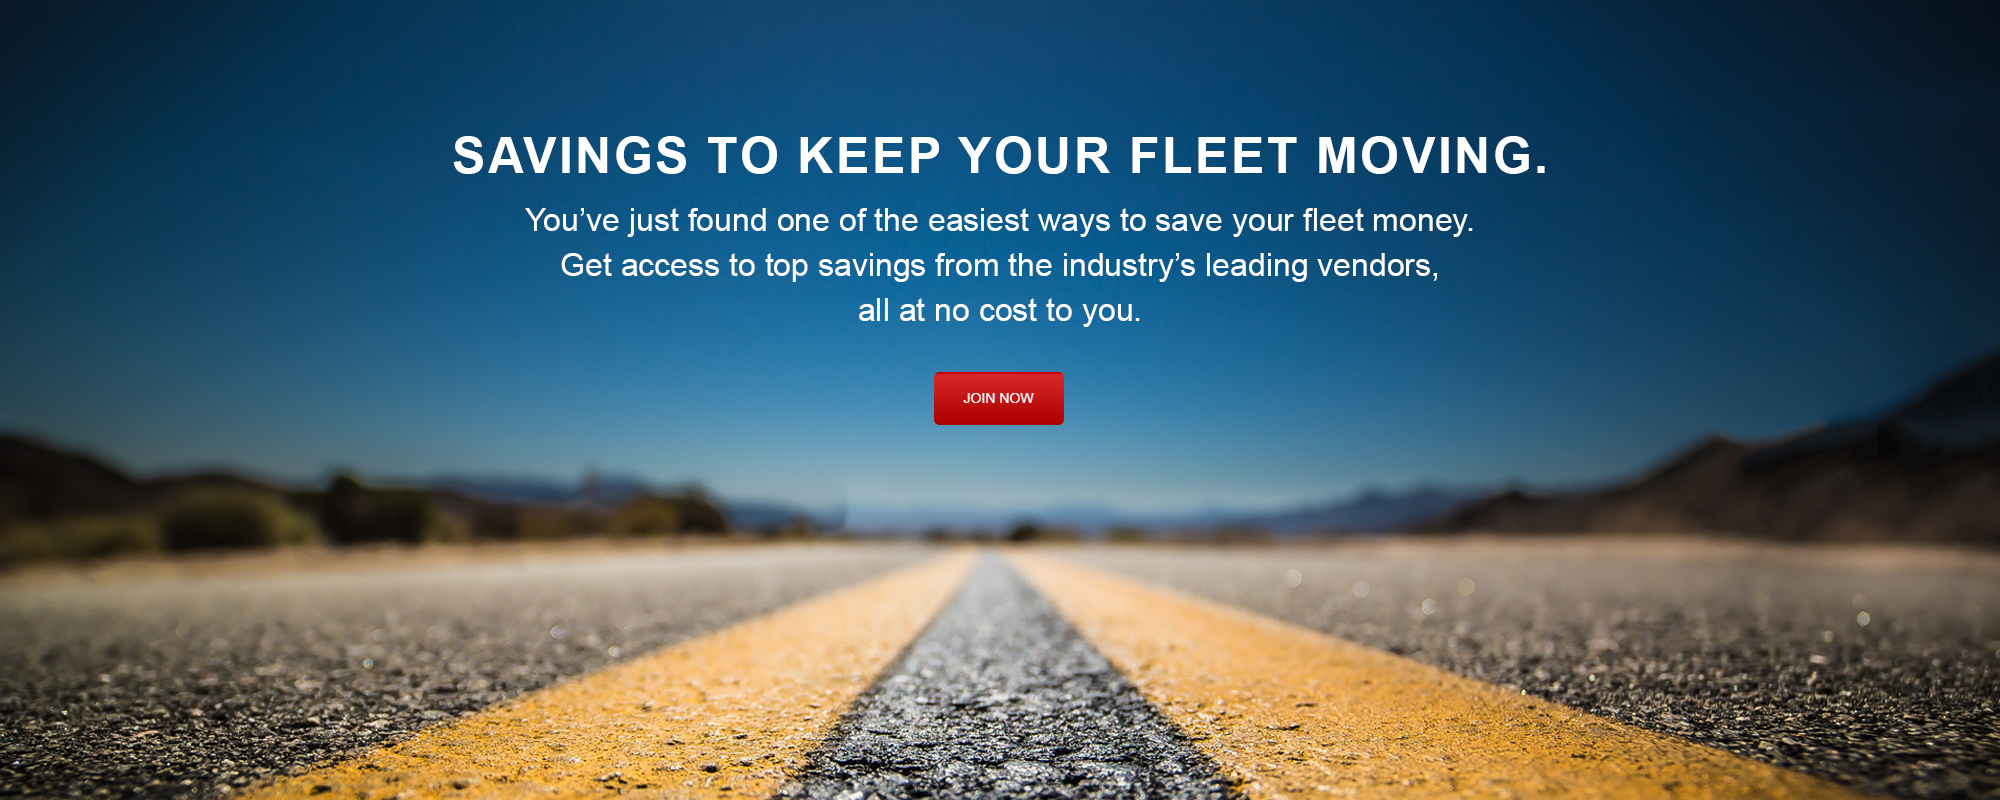 Keep your fleet moving